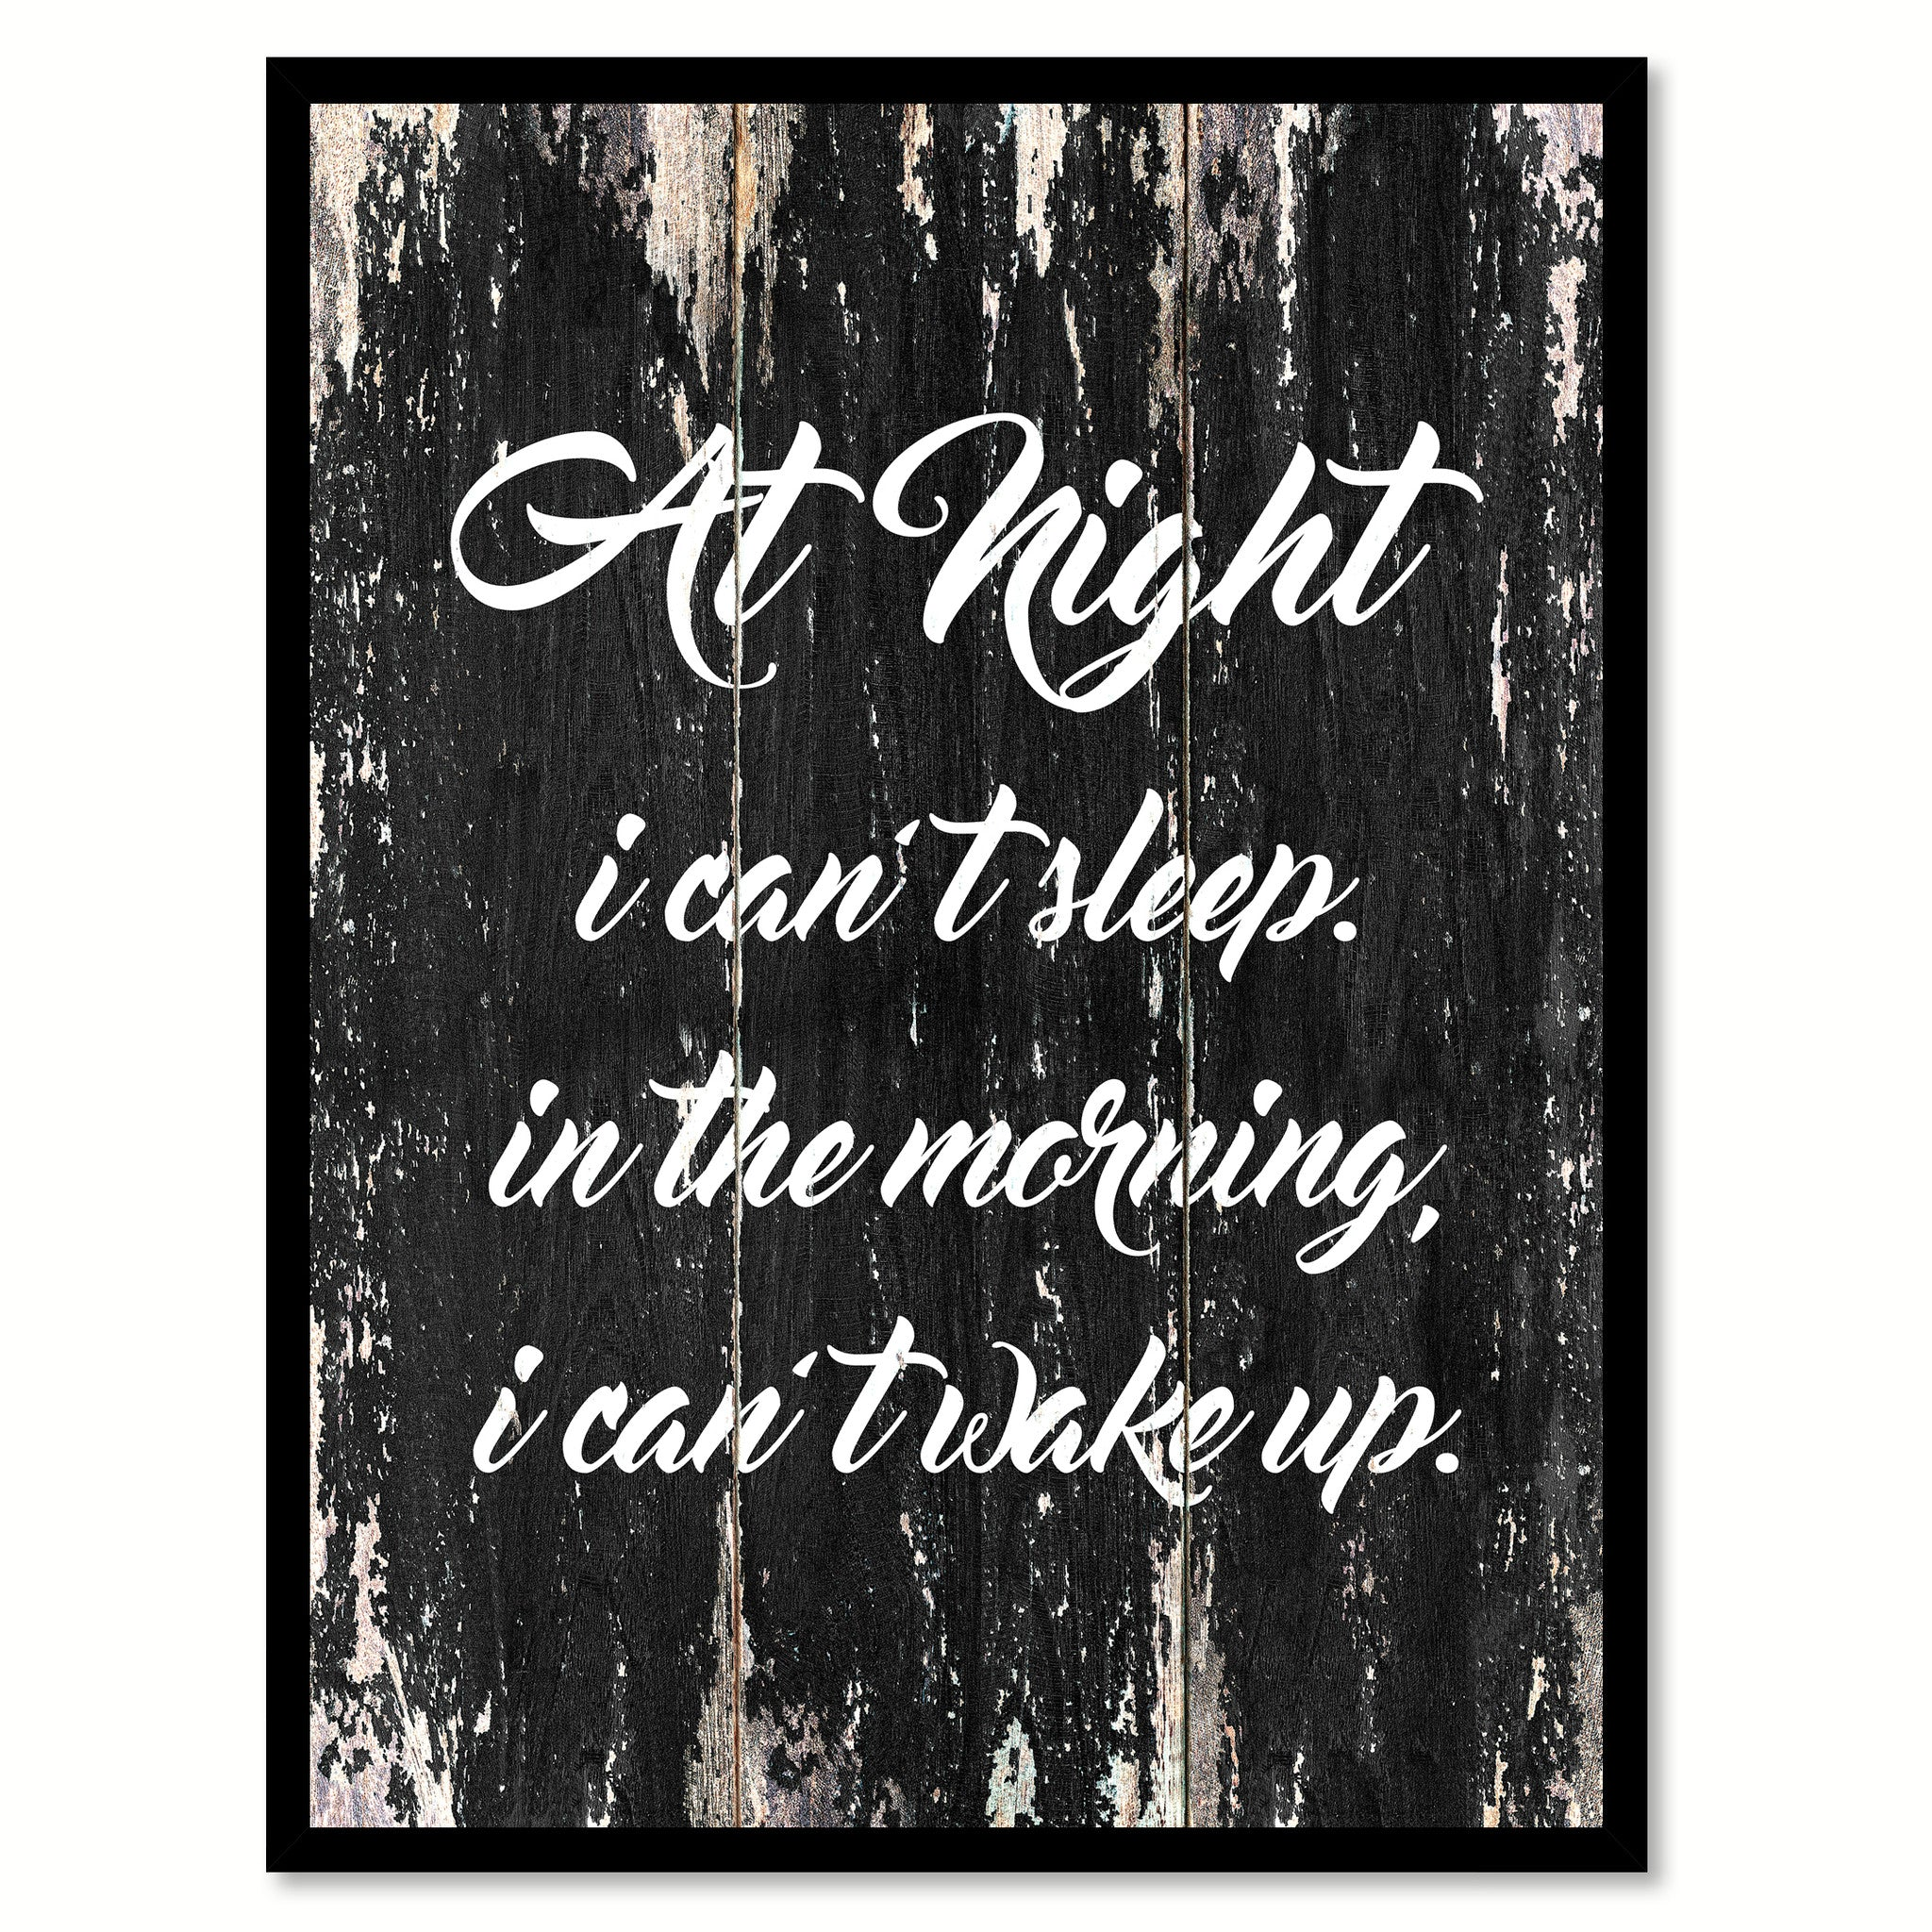 At Night I Canu0027t Sleep In The Morning I Canu0027t Wake Up Funny Quote Saying  Canvas Print With Picture Frame Home Decor Wall Art